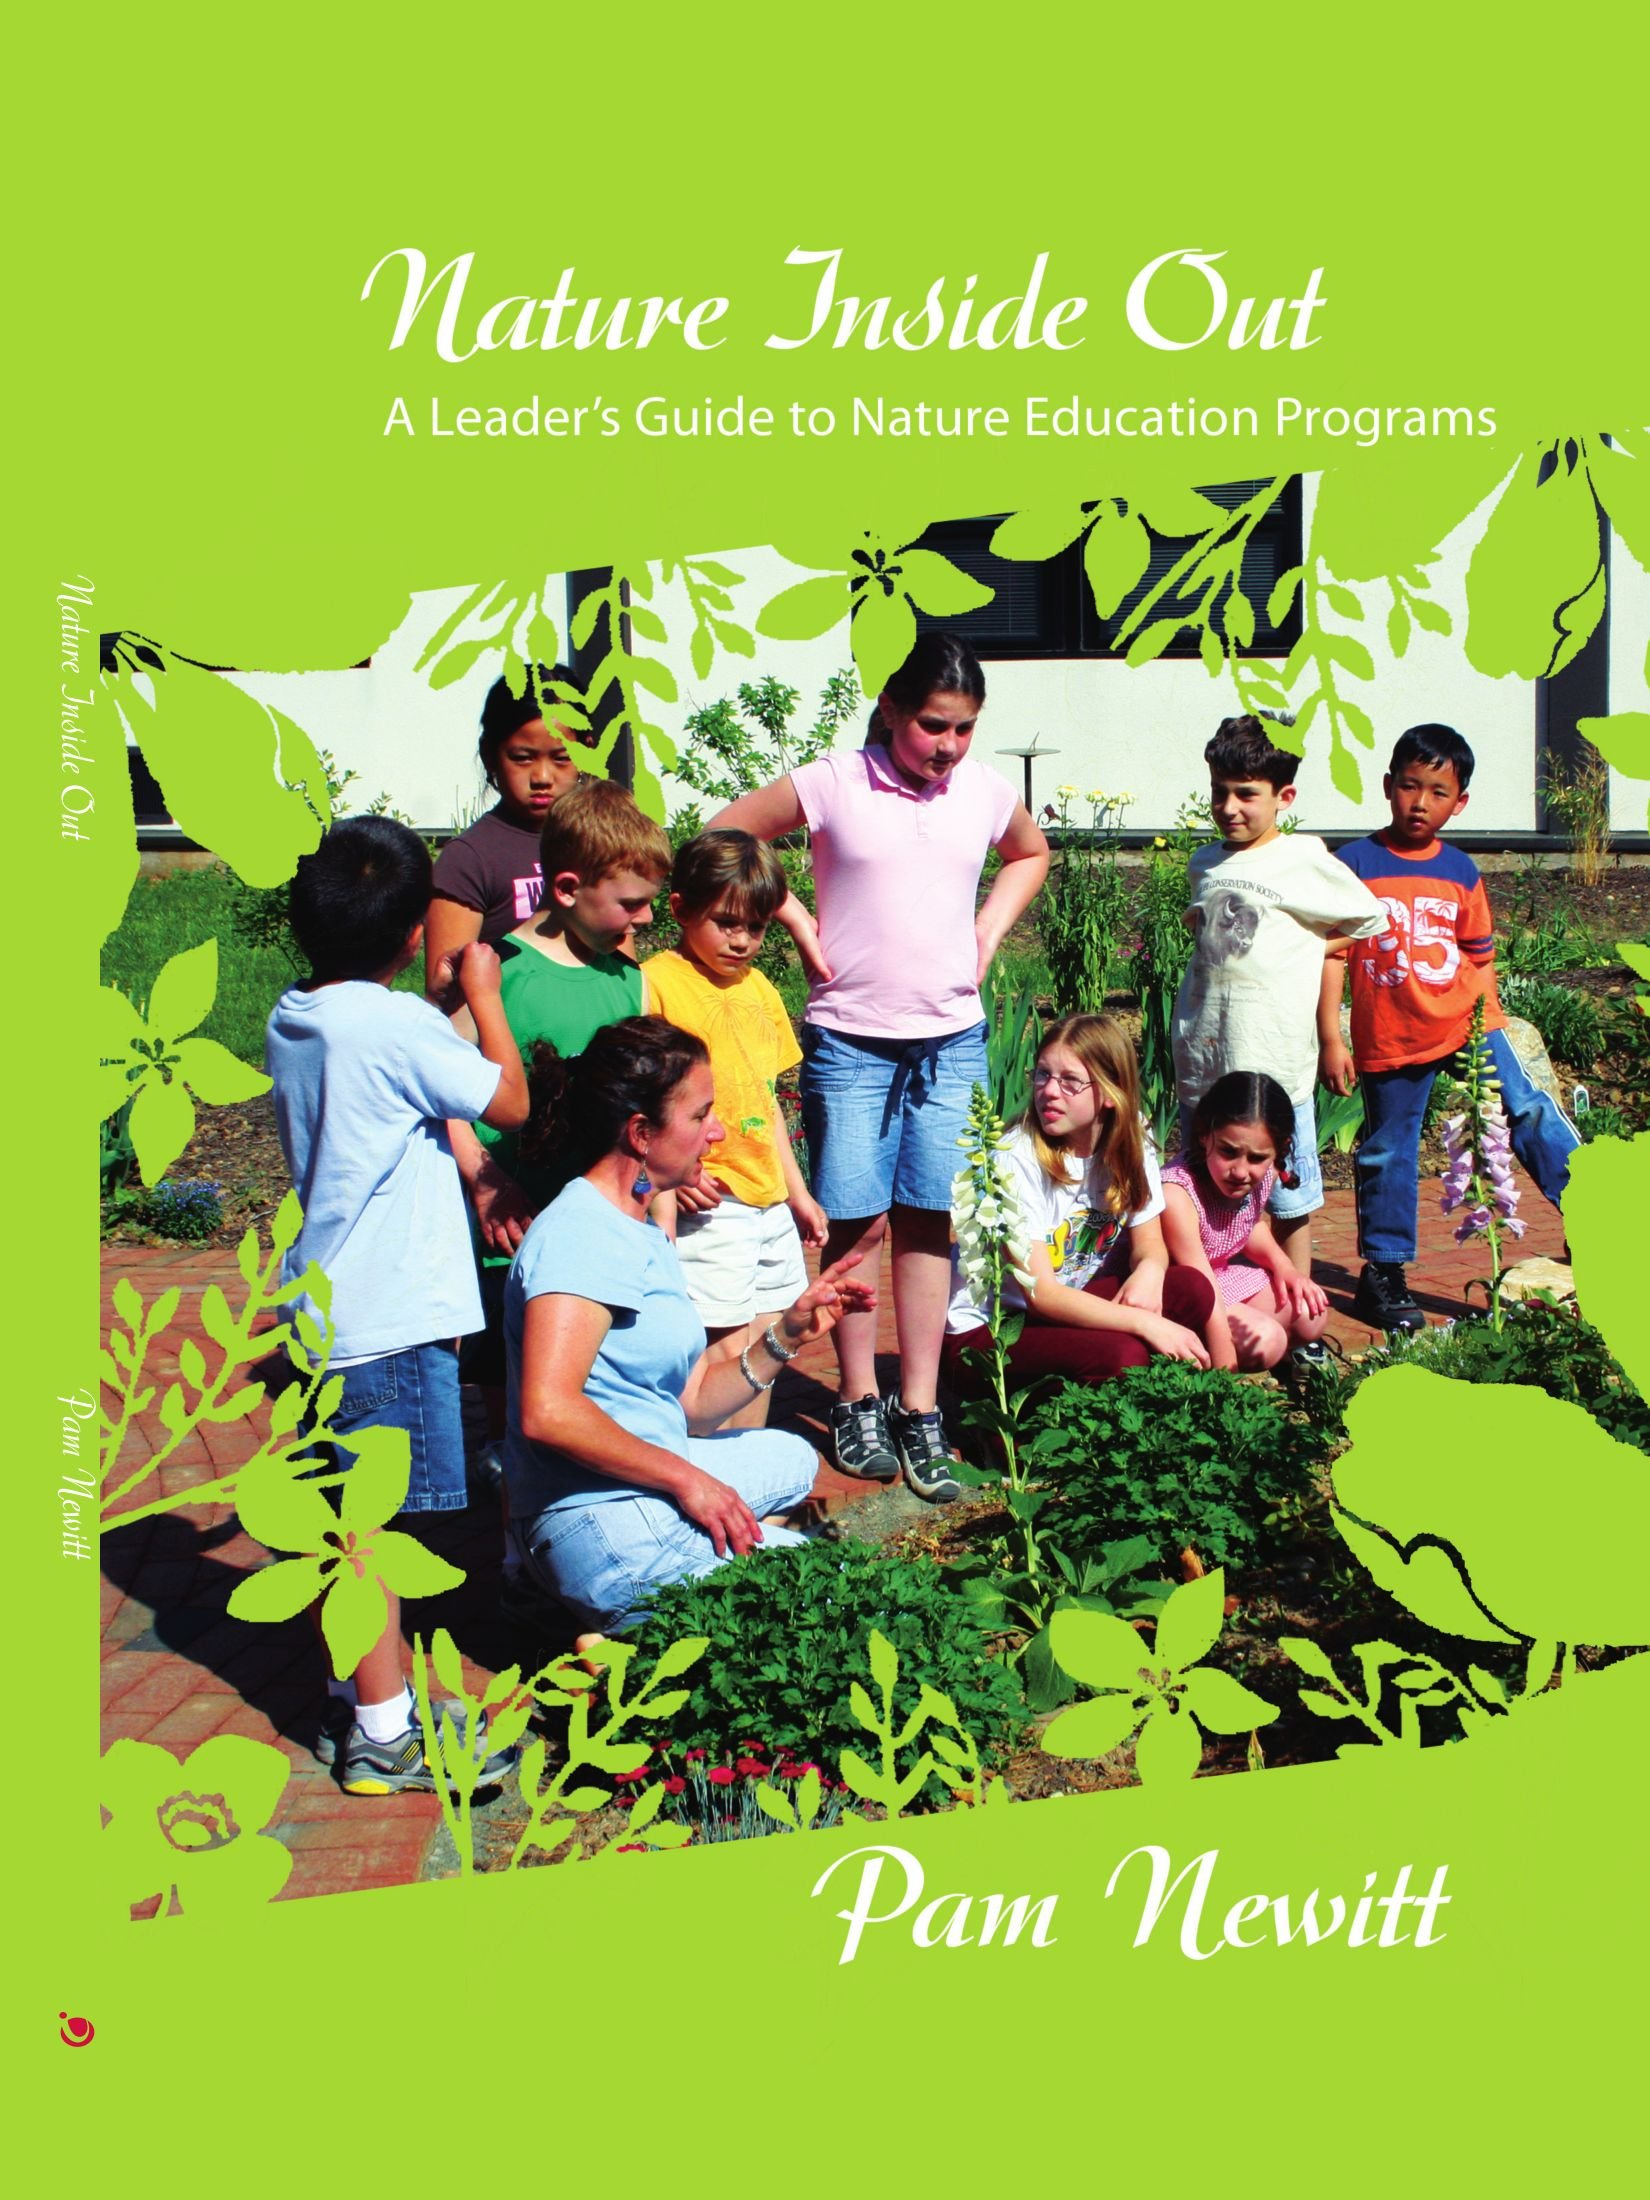 Nature Inside Out: A Leader's Guide to Nature Education Programs